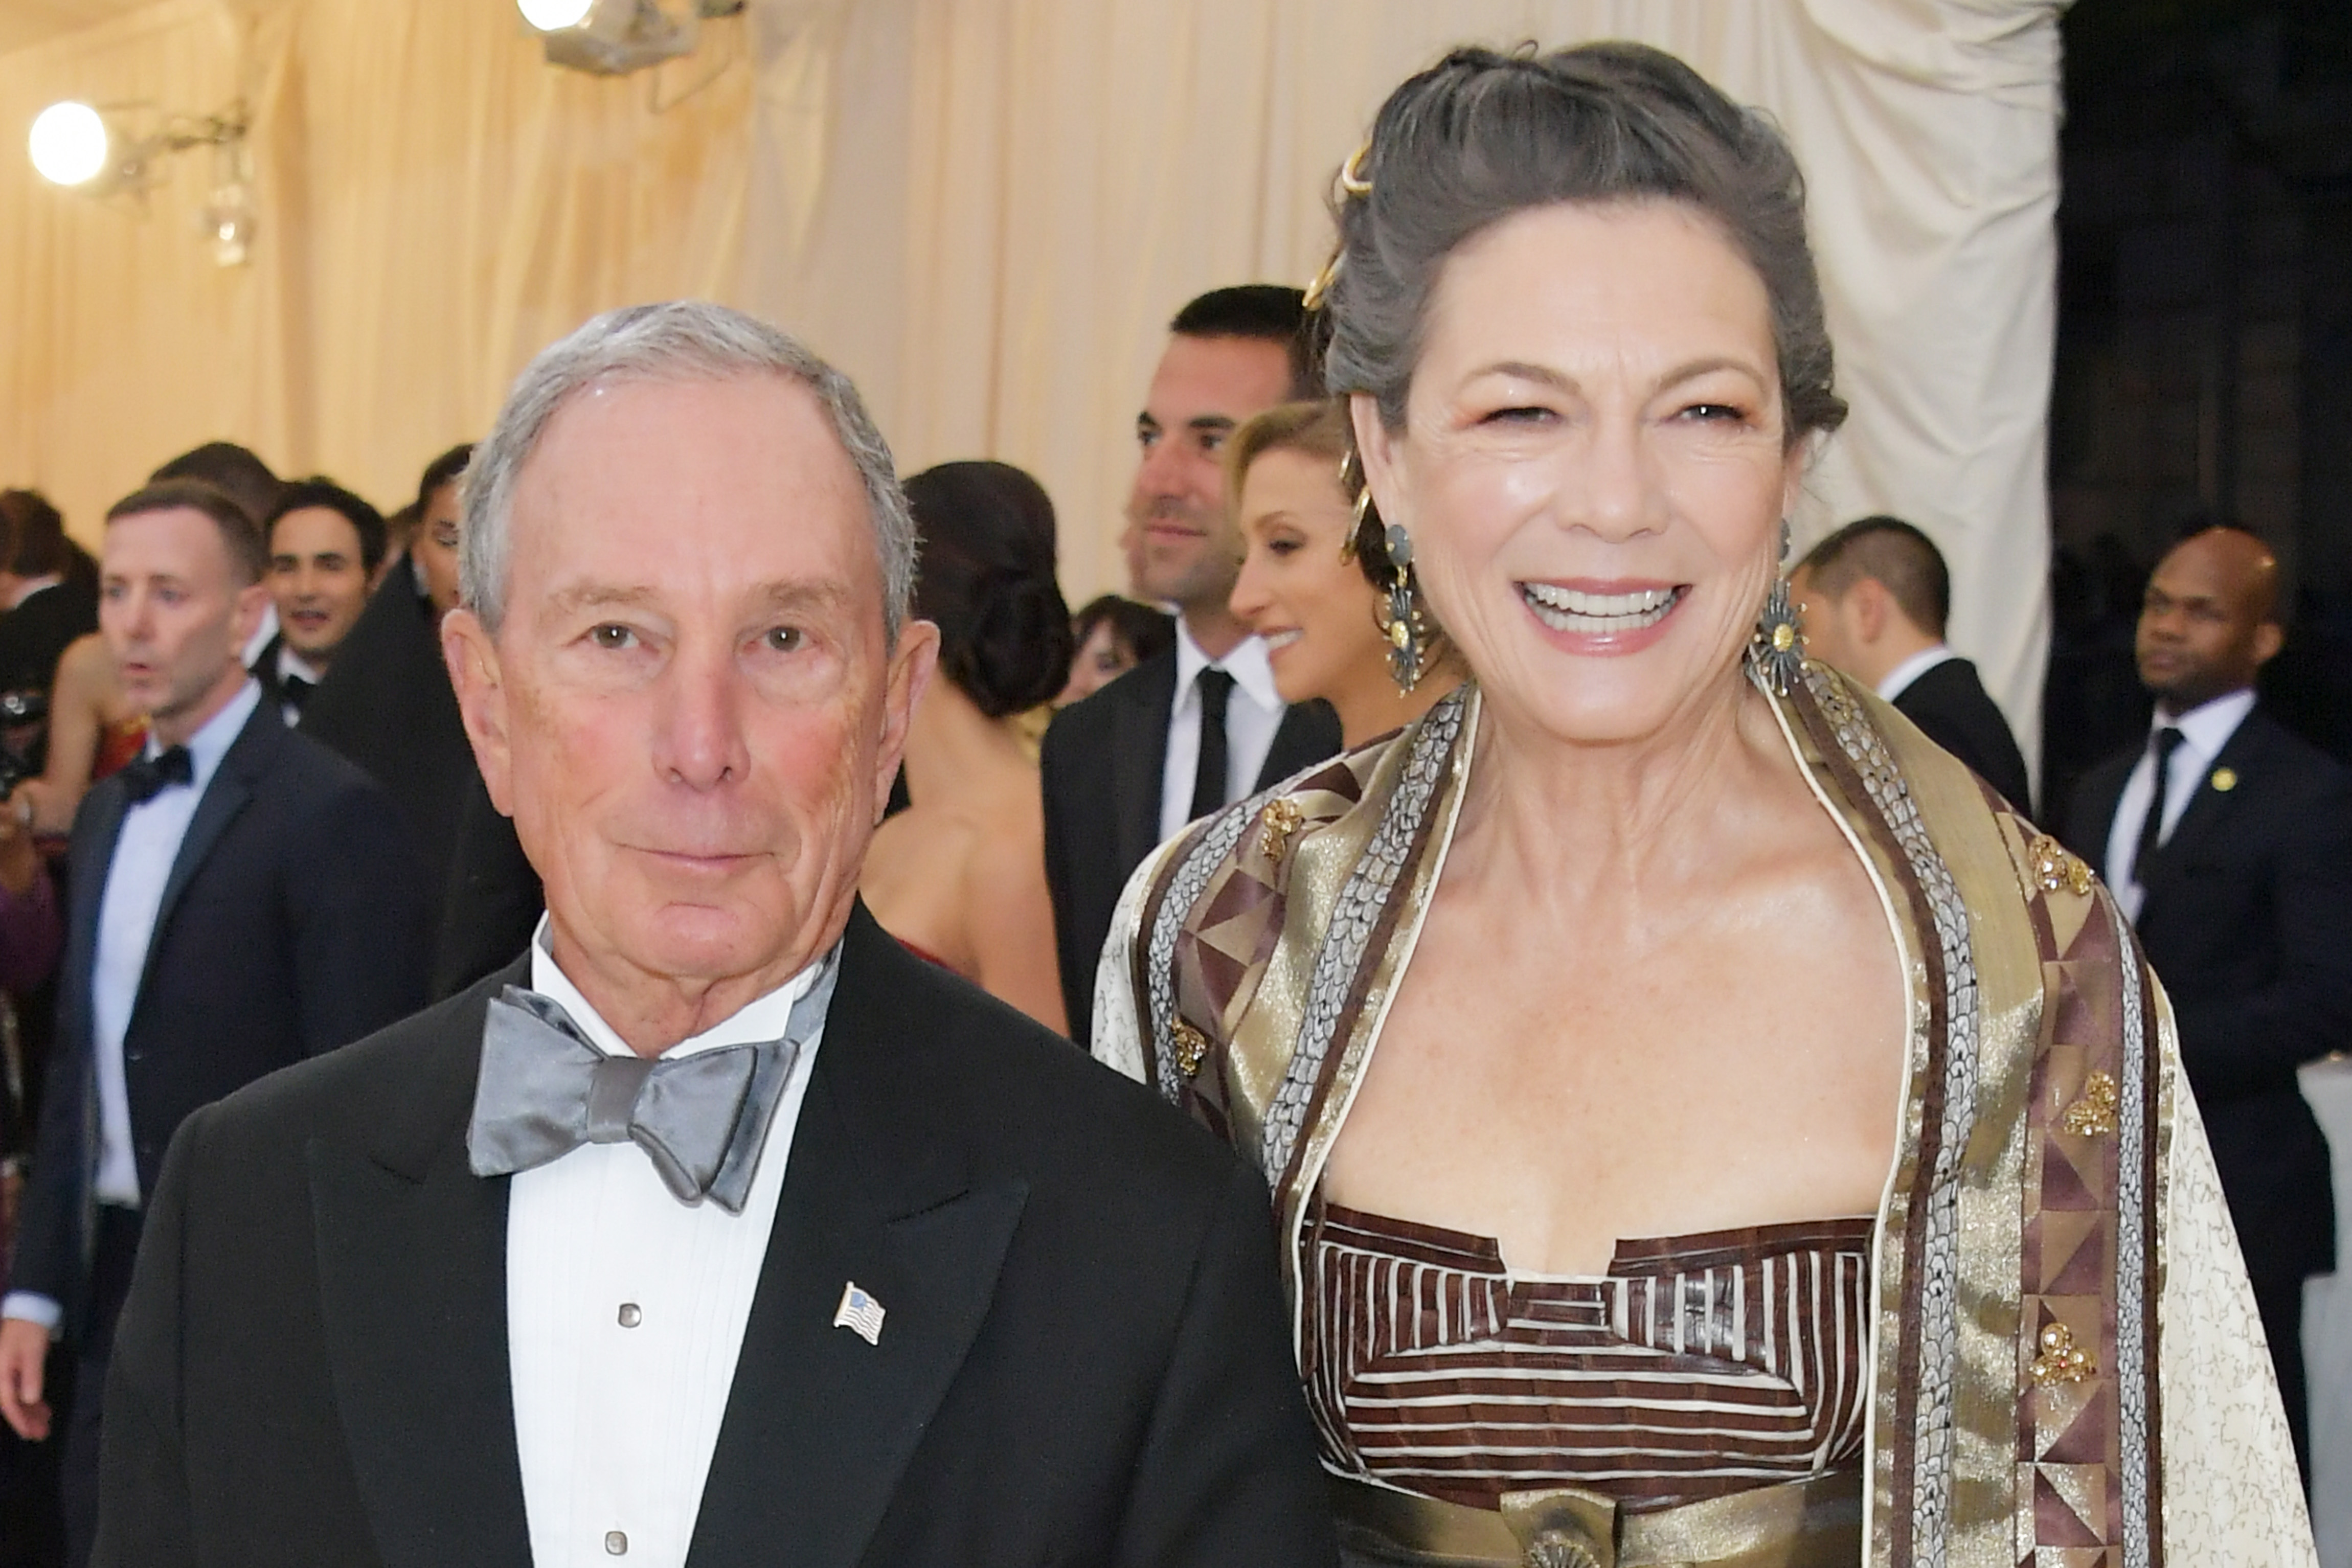 Michael Bloomberg and Diana Taylor attend the Heavenly Bodies: Fashion & The Catholic Imagination Costume Institute Gala at The Metropolitan Museum of Art on May 7, 2018 in New York City. (Neilson Barnard/Getty Images)